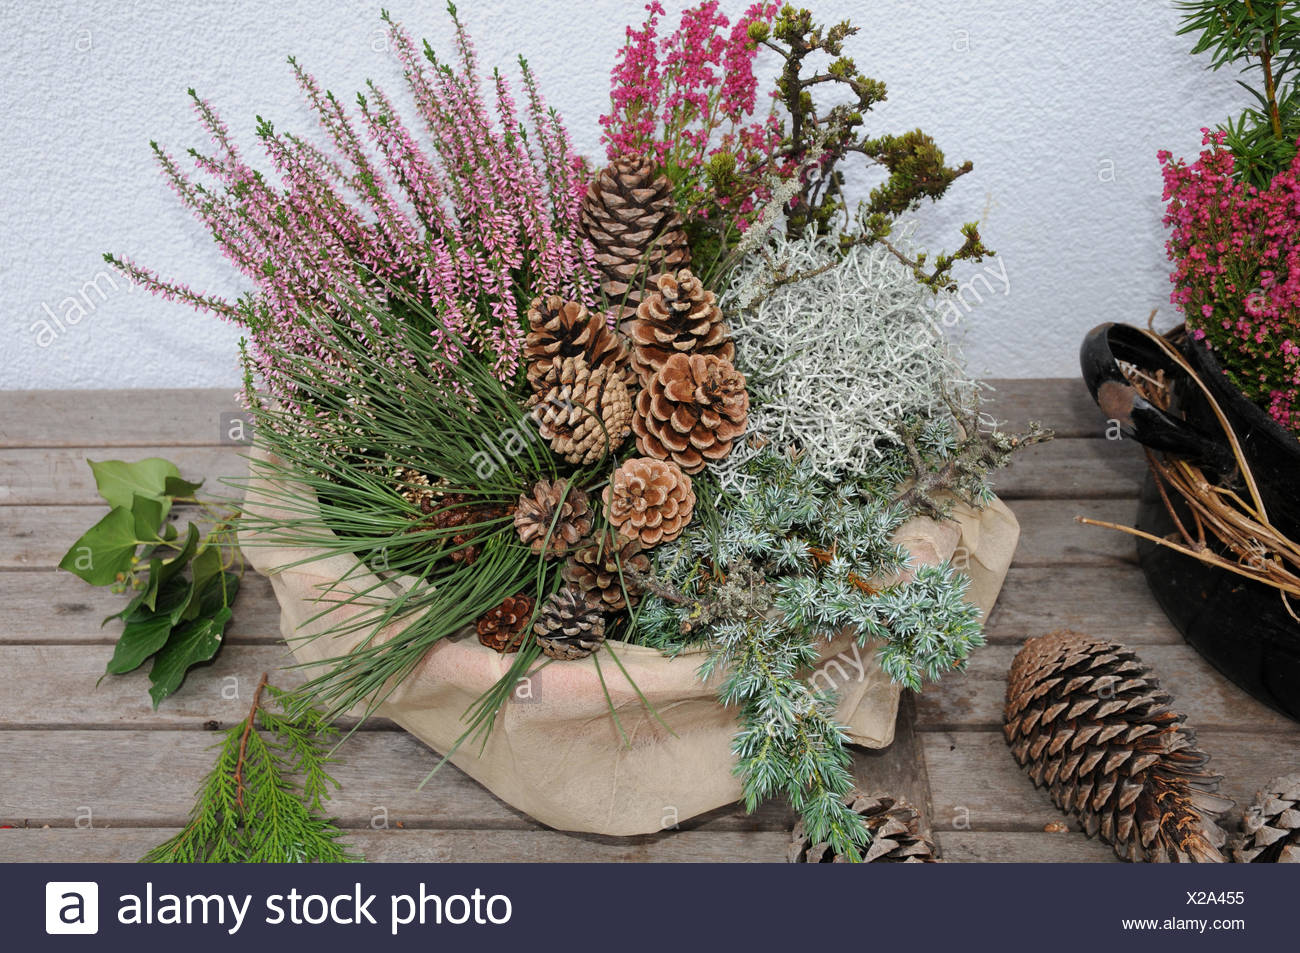 Balkon Bepflanzen Stock Photos Balkon Bepflanzen Stock Images Alamy